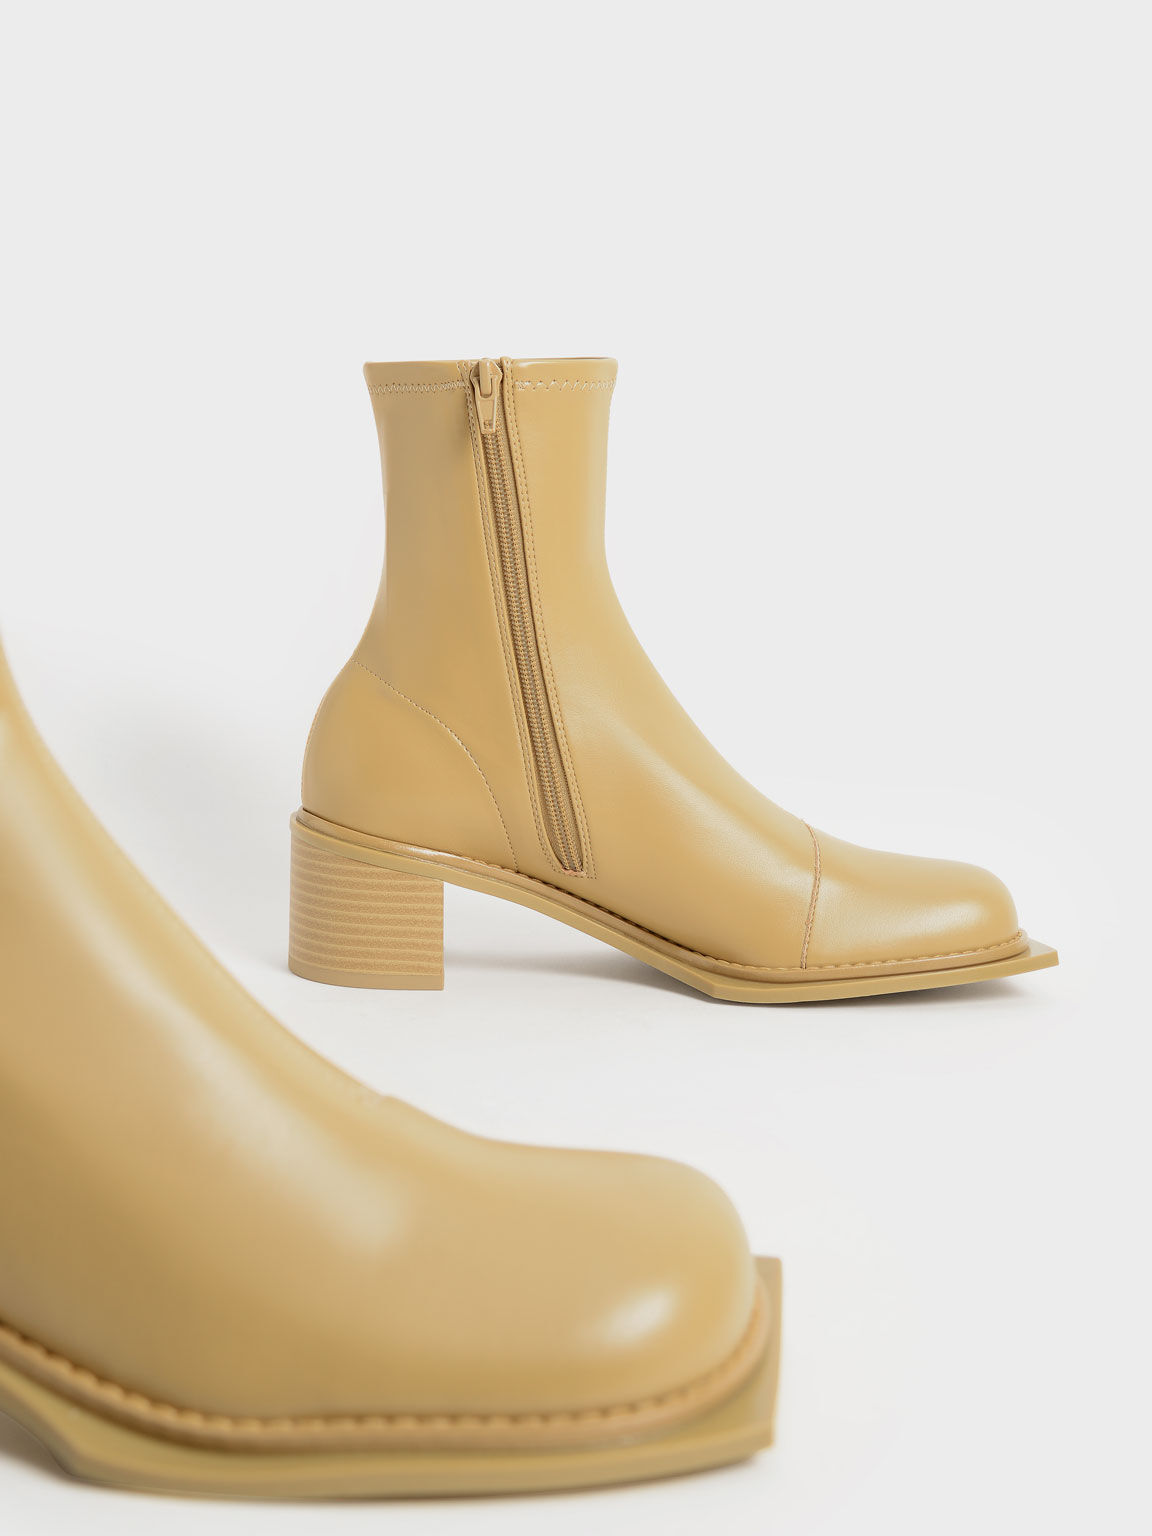 Bee Stitch-Trim Ankle Boots, Sand, hi-res